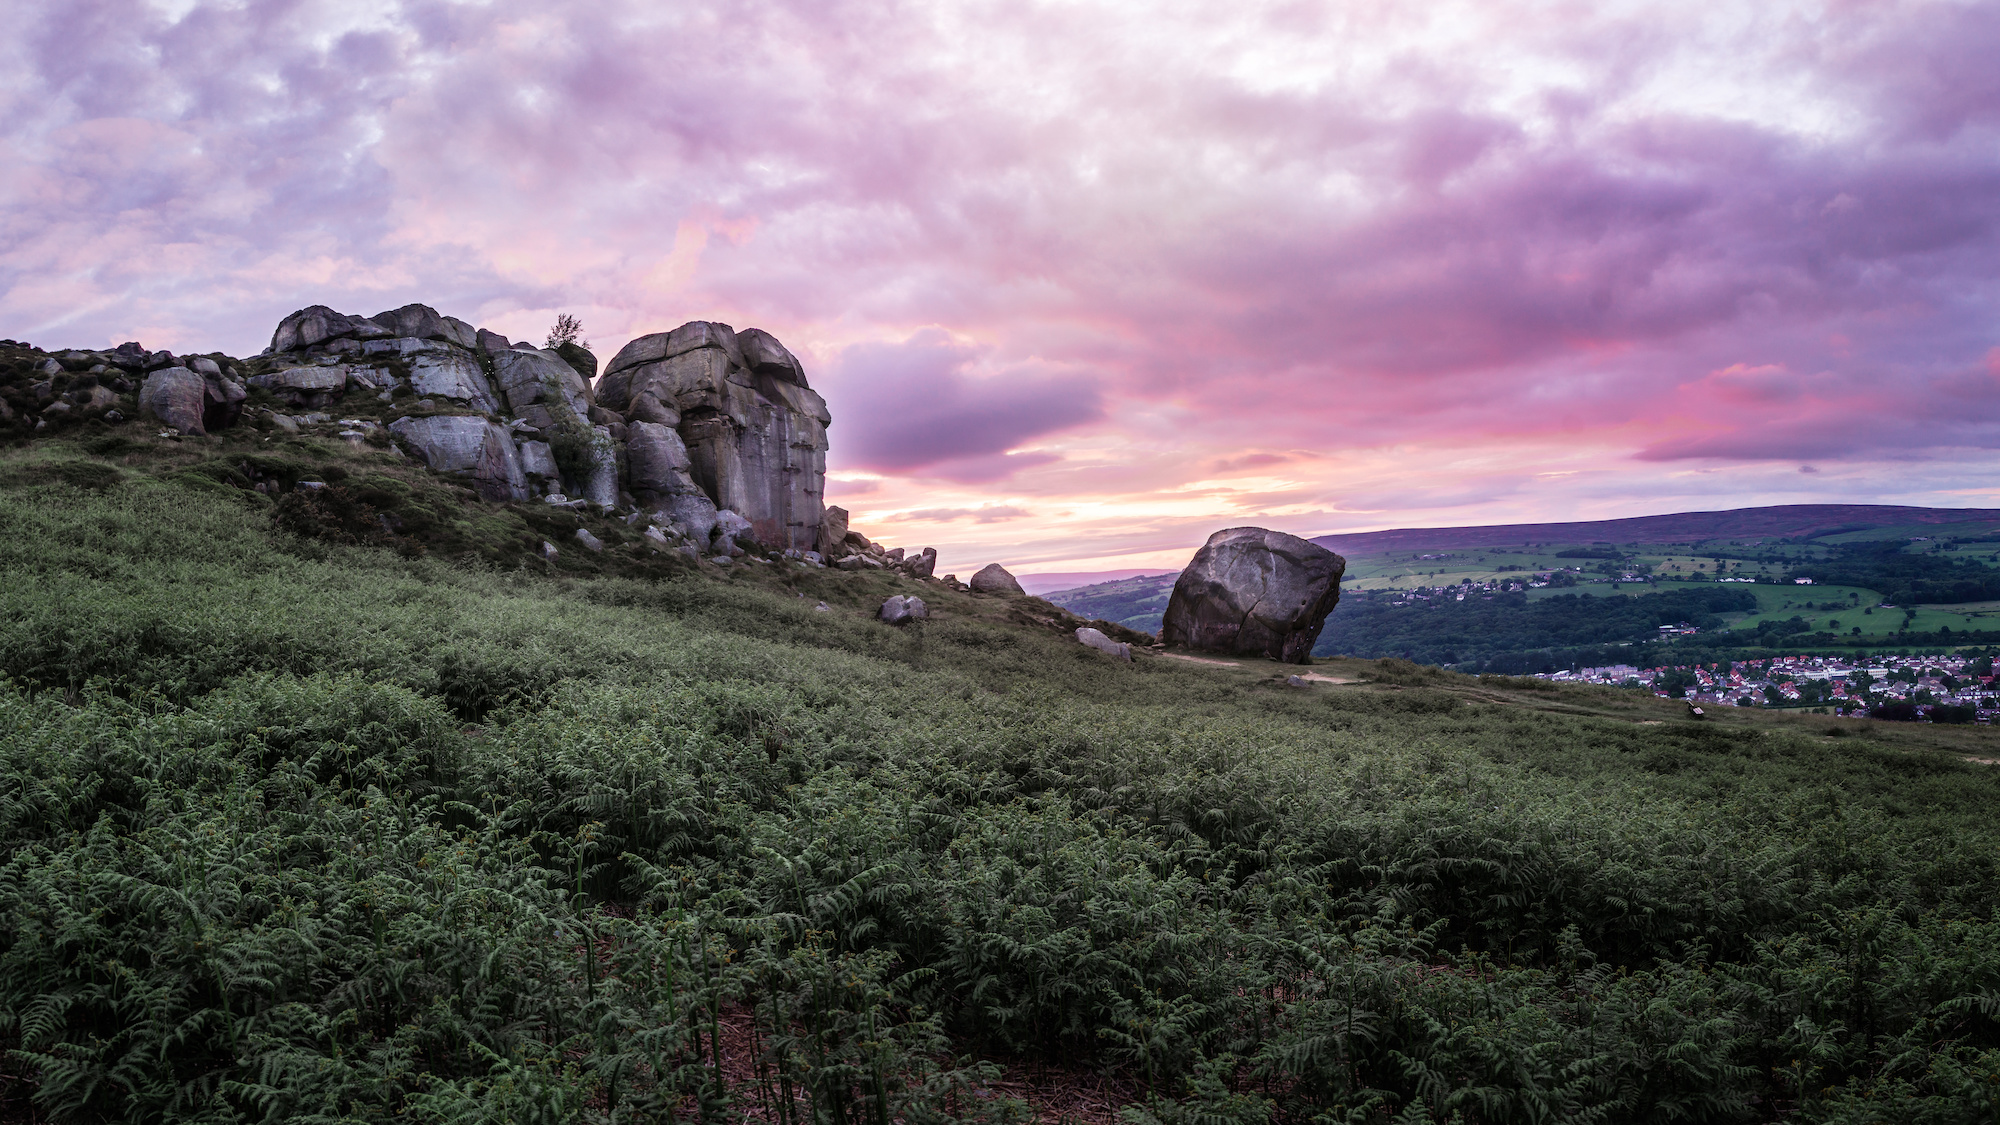 Sunset at Cow and Calf